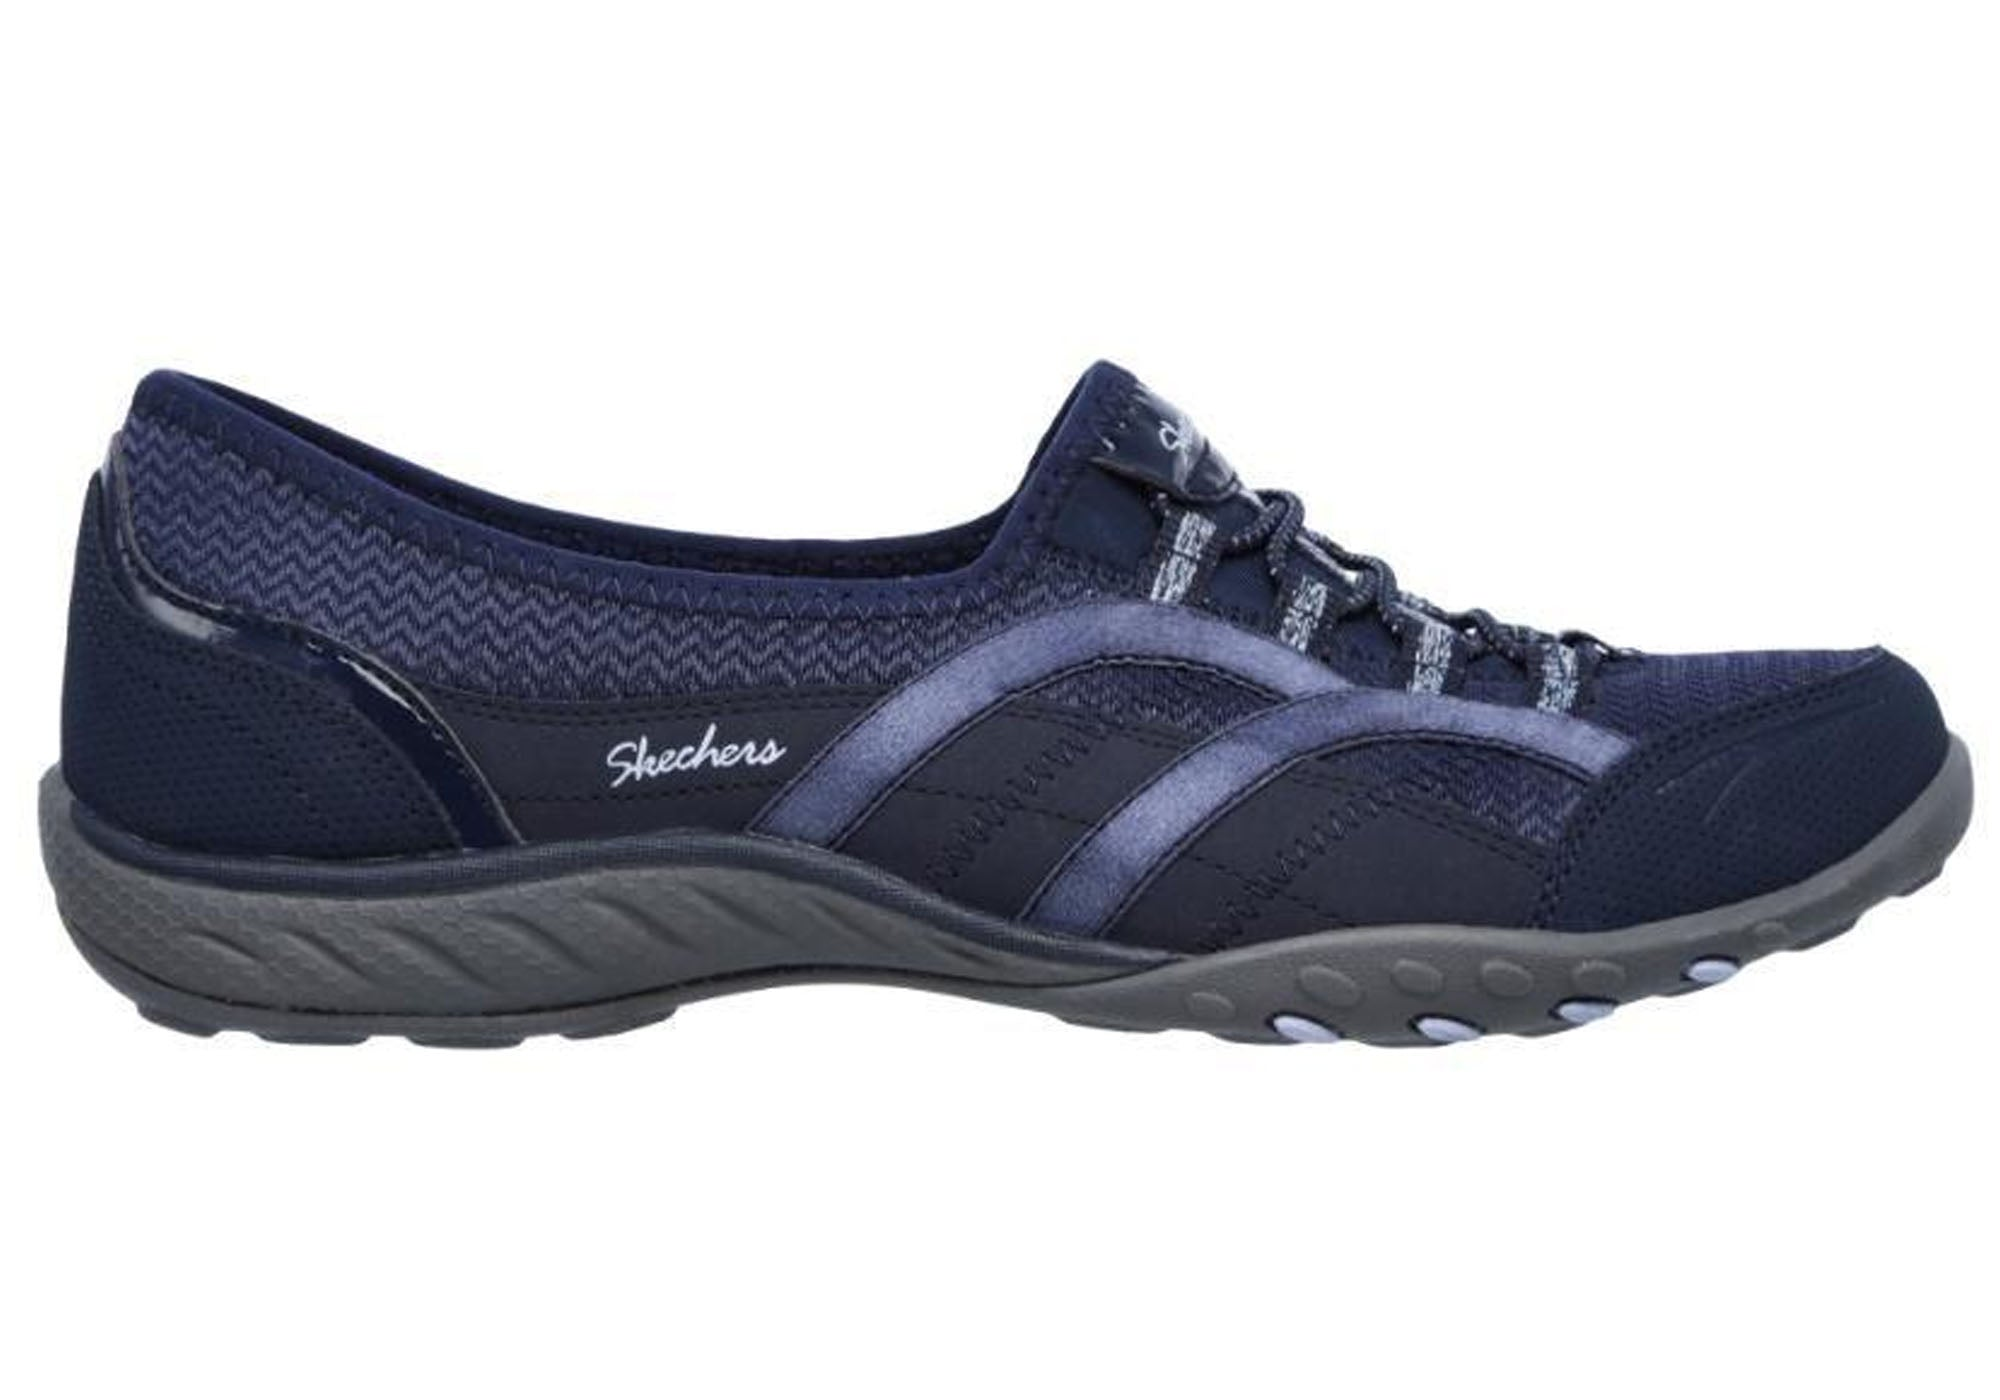 Details about Brand New Skechers Womens Relaxed Fit Breathe Easy Faithful Memory Foam Shoes